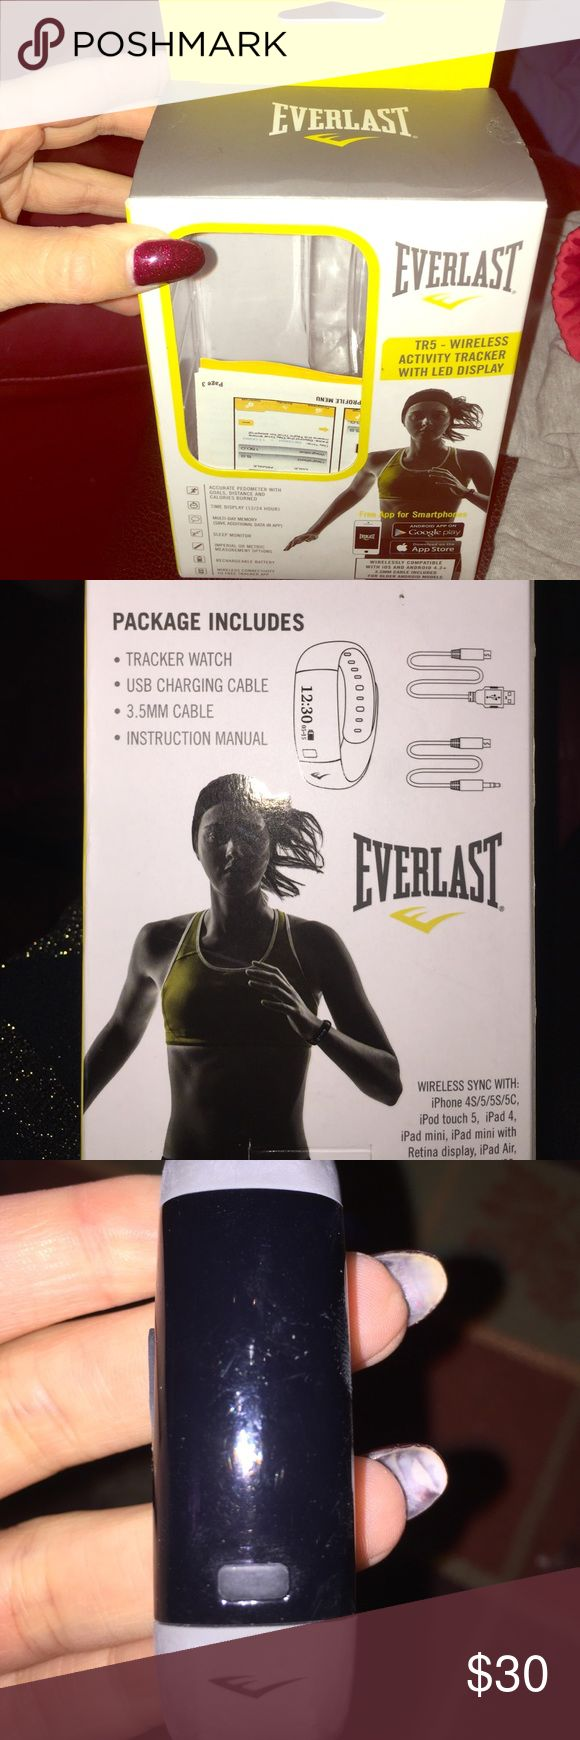 Everlast Fitbit watch Everlast fit bit exercise watch! Tracks workout, sleep pattern and much more. In good condition! Lightly used. Just needs new battery. Comes with original box and band everlast Accessories Watches